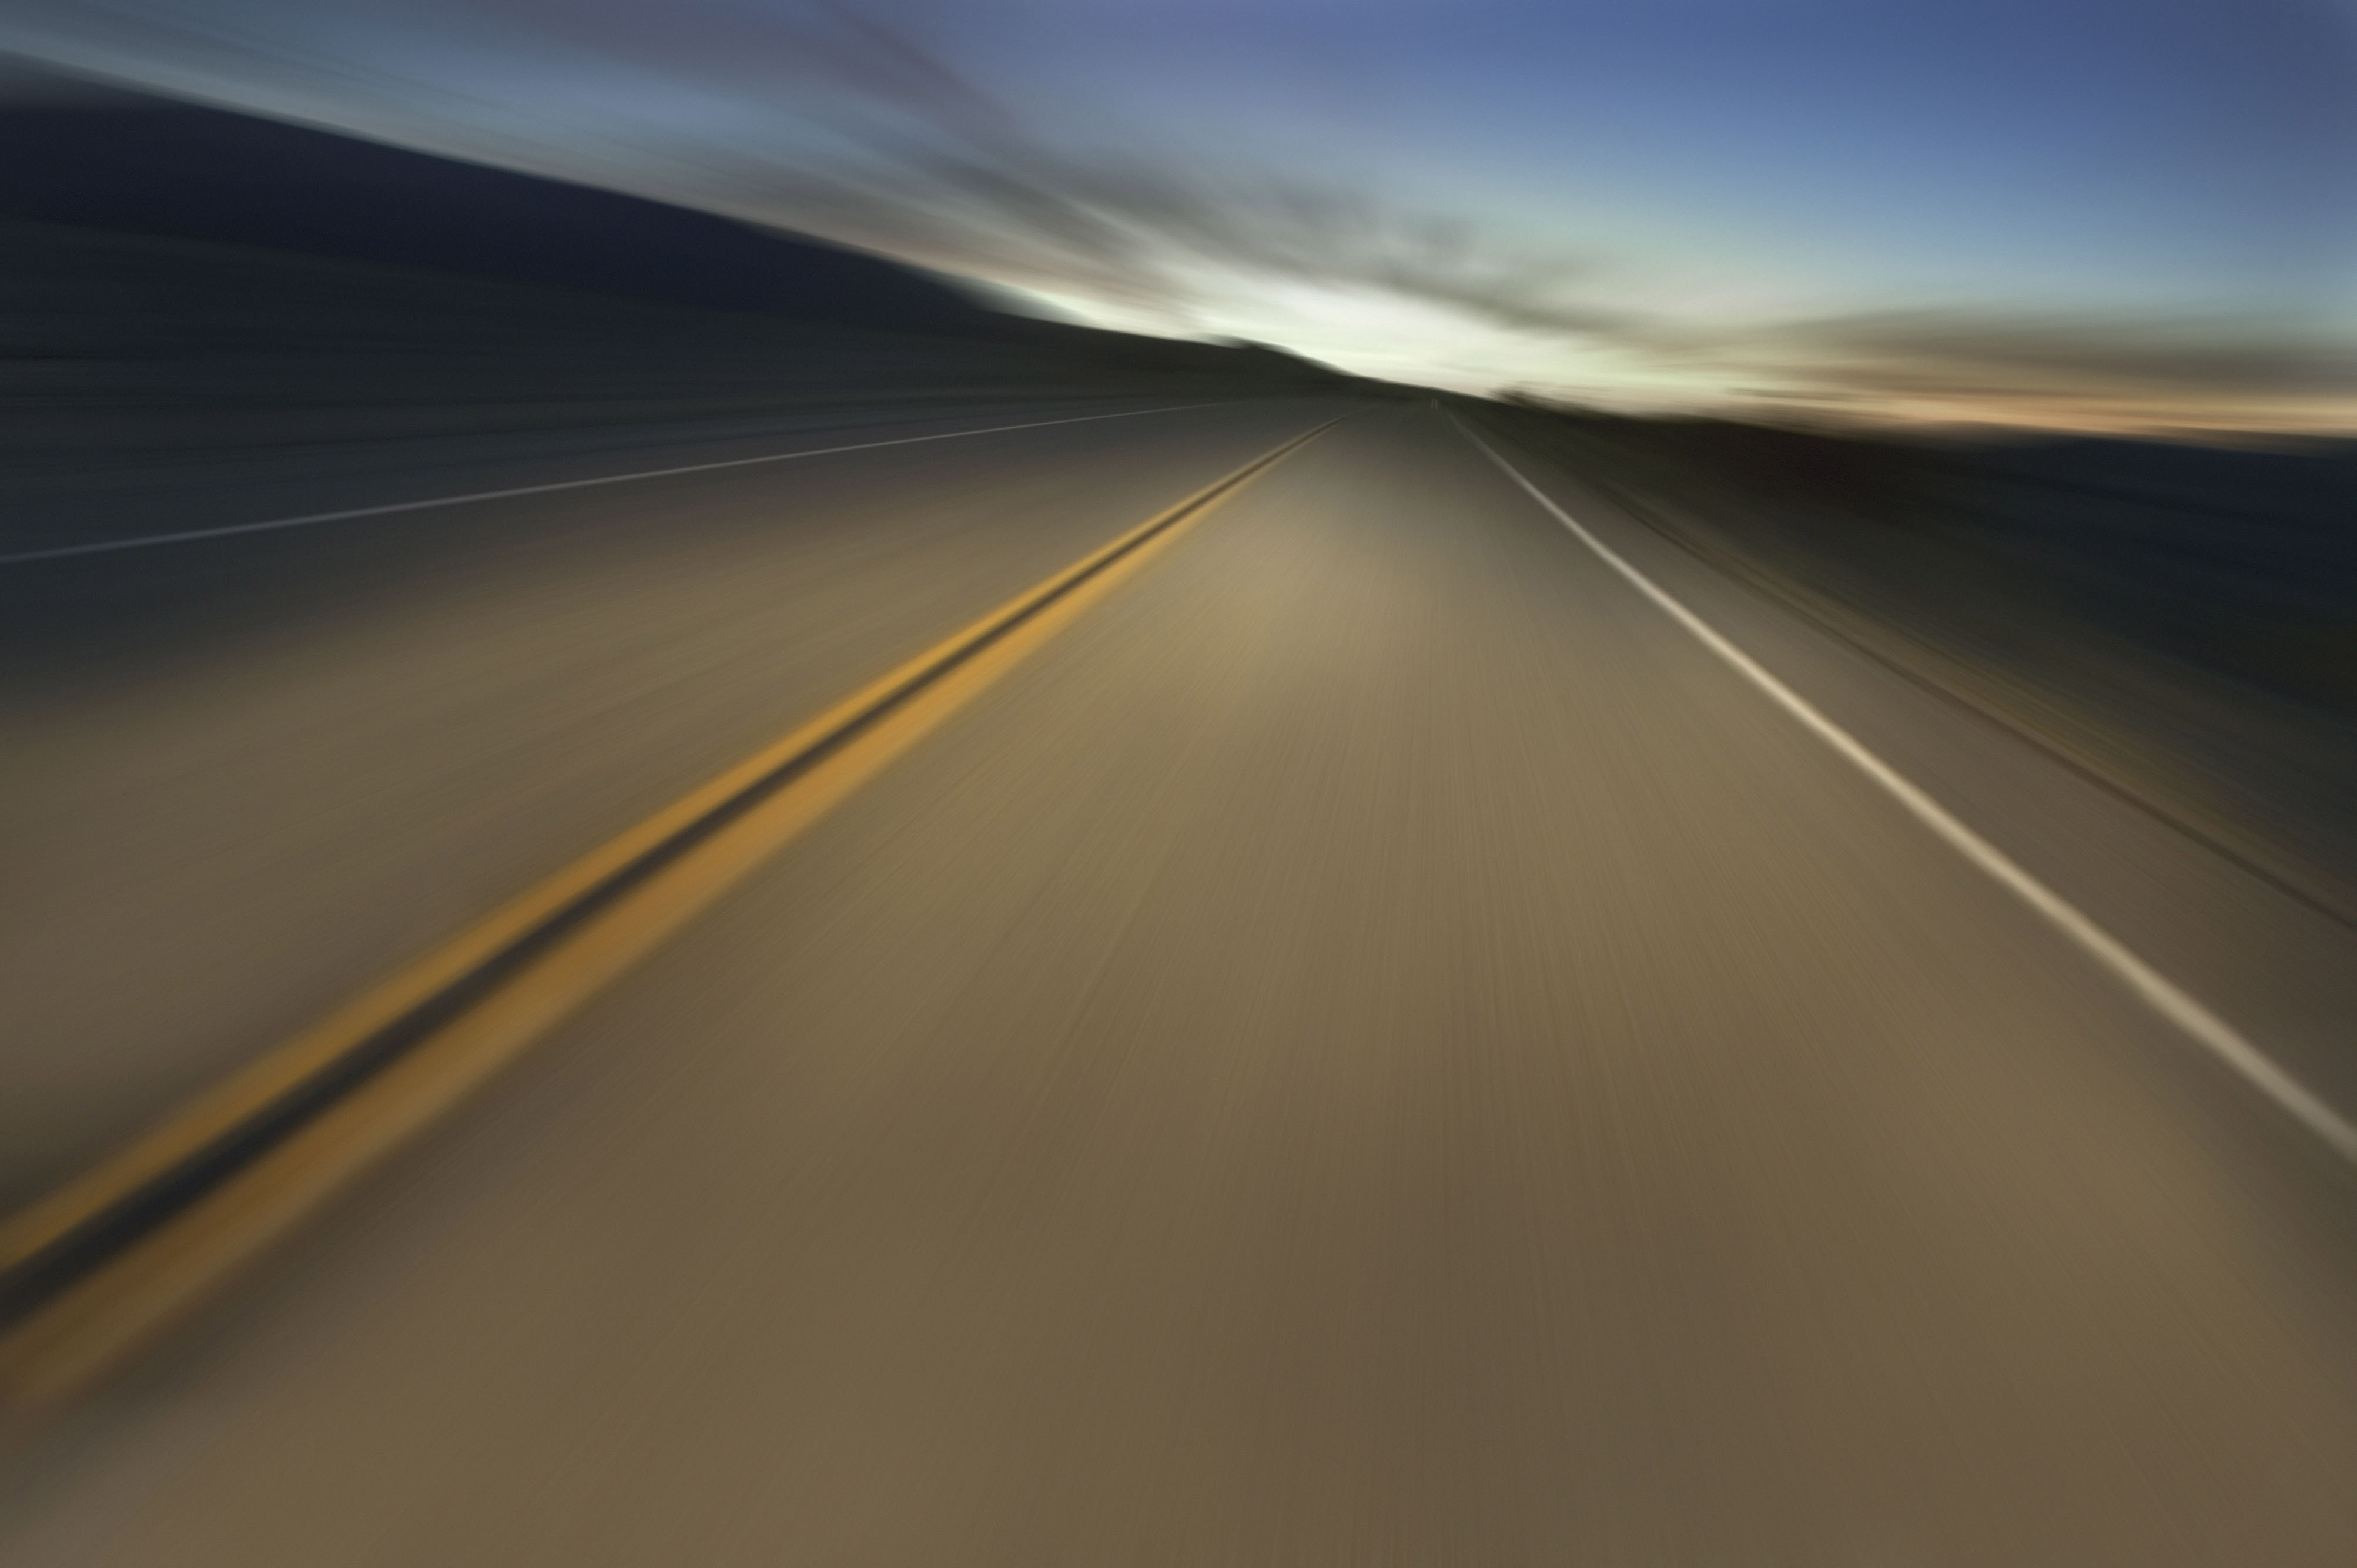 Download Wallpaper Evening Road Speed Highway 4010x2668 Foreboding Road